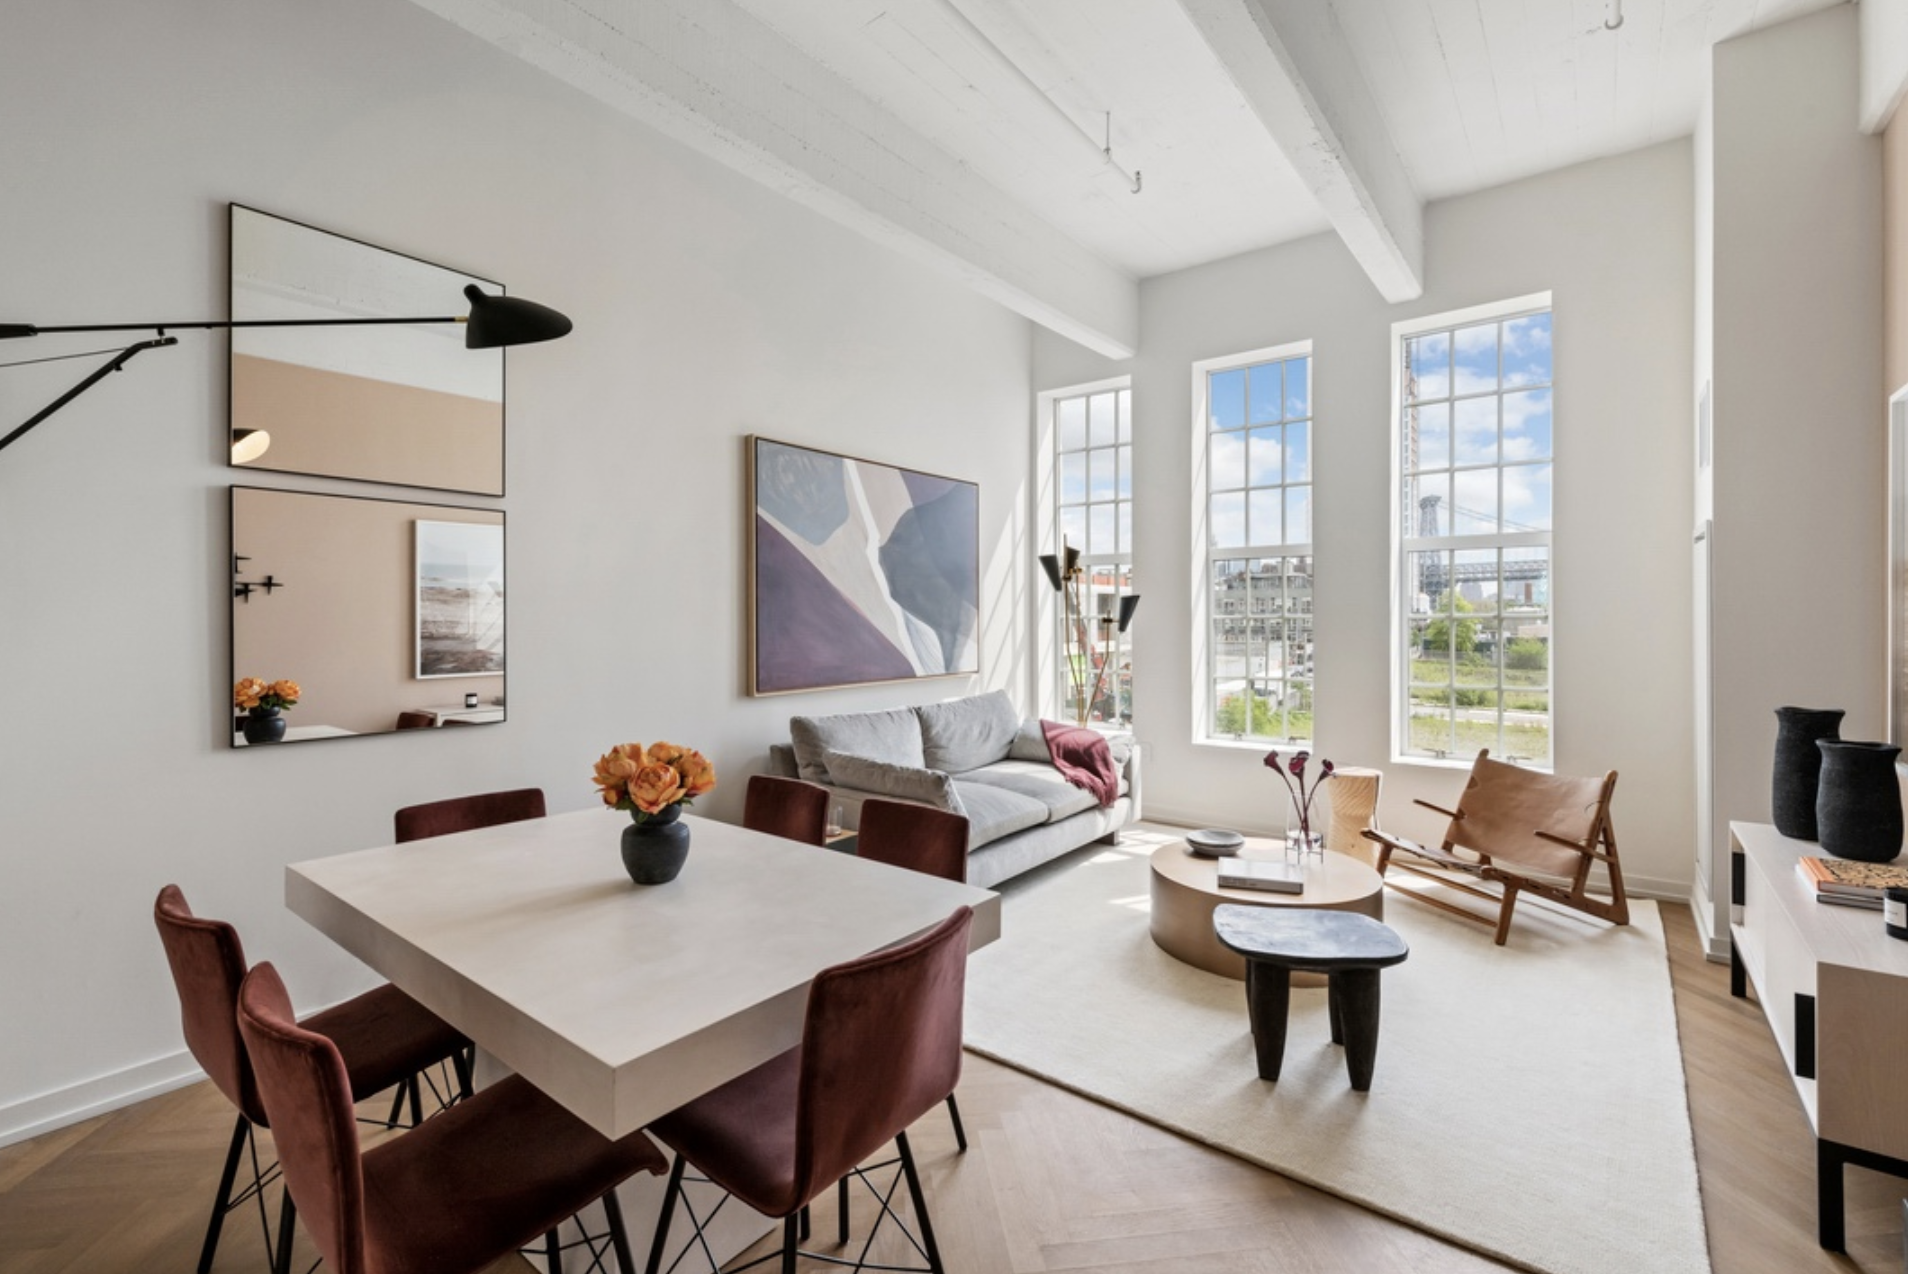 184 KENT AVENUE, C101 - $950,000 // 1 Bed // 1 Bath // 713 SQFTExperience true loft living in this spacious home with breathtaking Northern views. The open Chefs kitchen comes equipped with a fully integrated Smart tech Dacor refrigerator, Bertazzoni four-burner gas stove and microwave oven and Asko dishwasher. The expansive living area is adorned with two large casement windows beaming natural sunlight over Herringbone tobacco smoked oak wood flooring and an LG all-in-one washer/dryer combo.